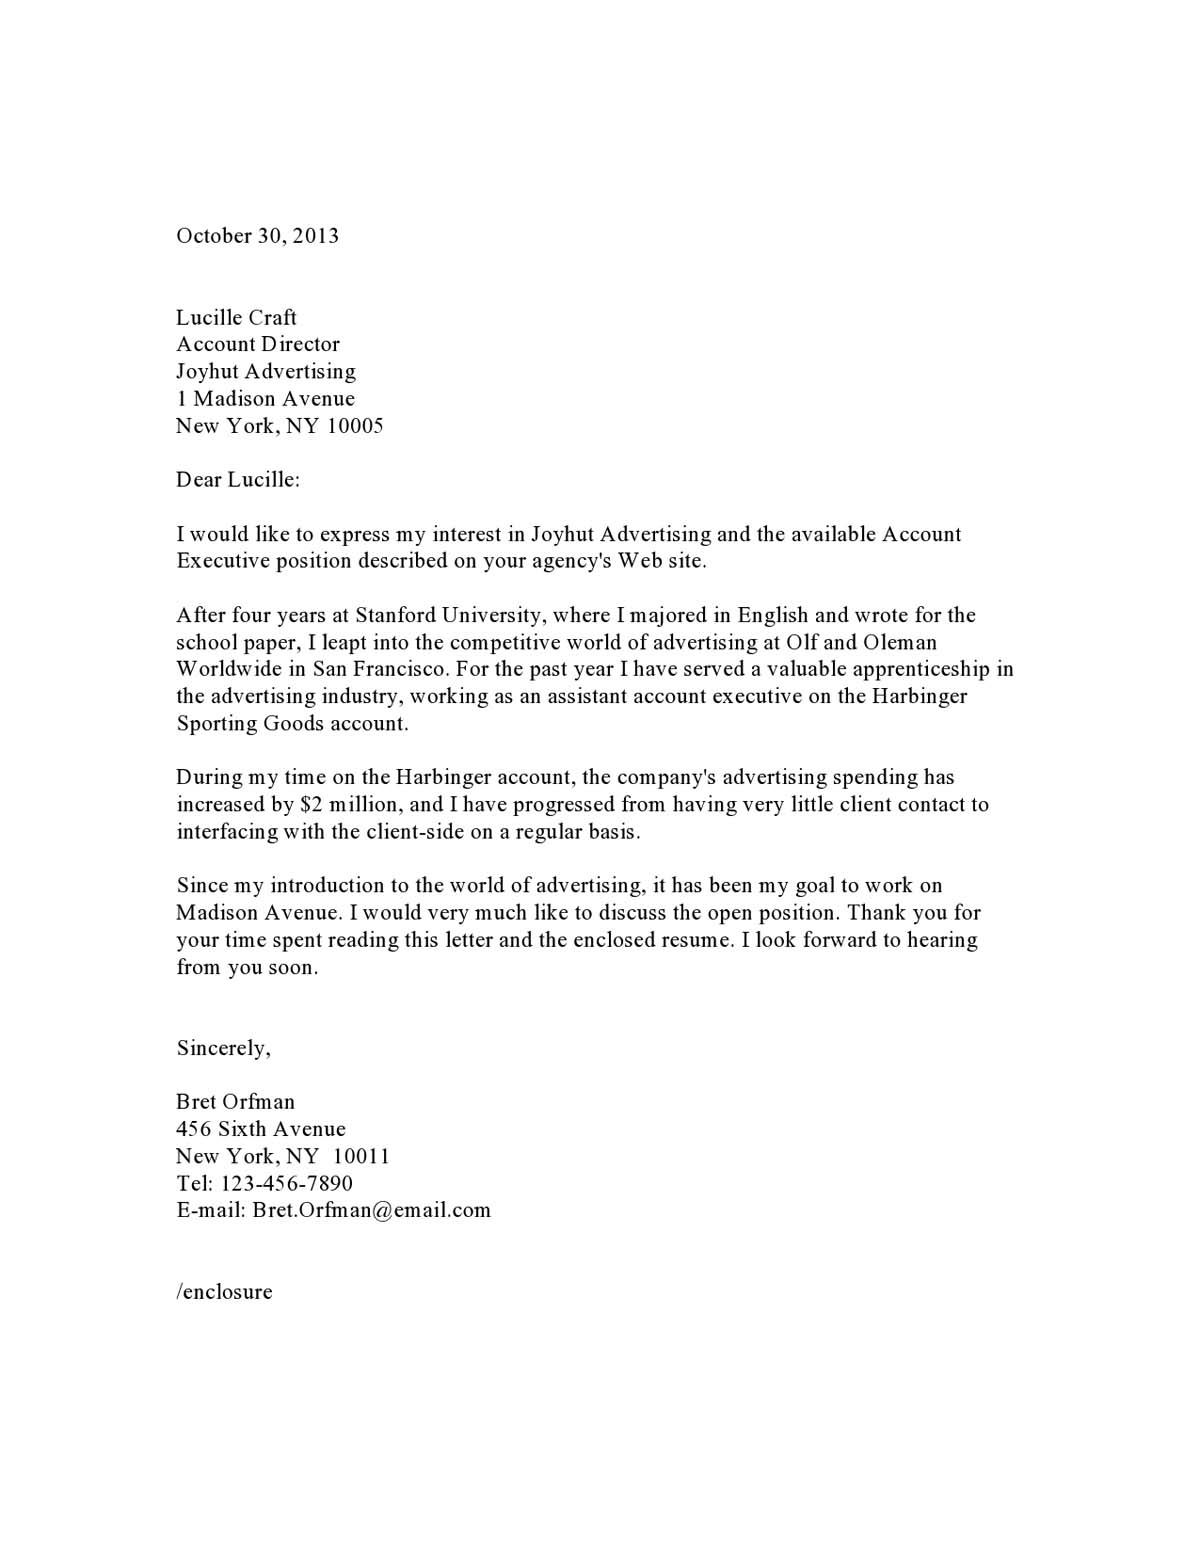 Cover Letter Examples Samples Templates Vault Com